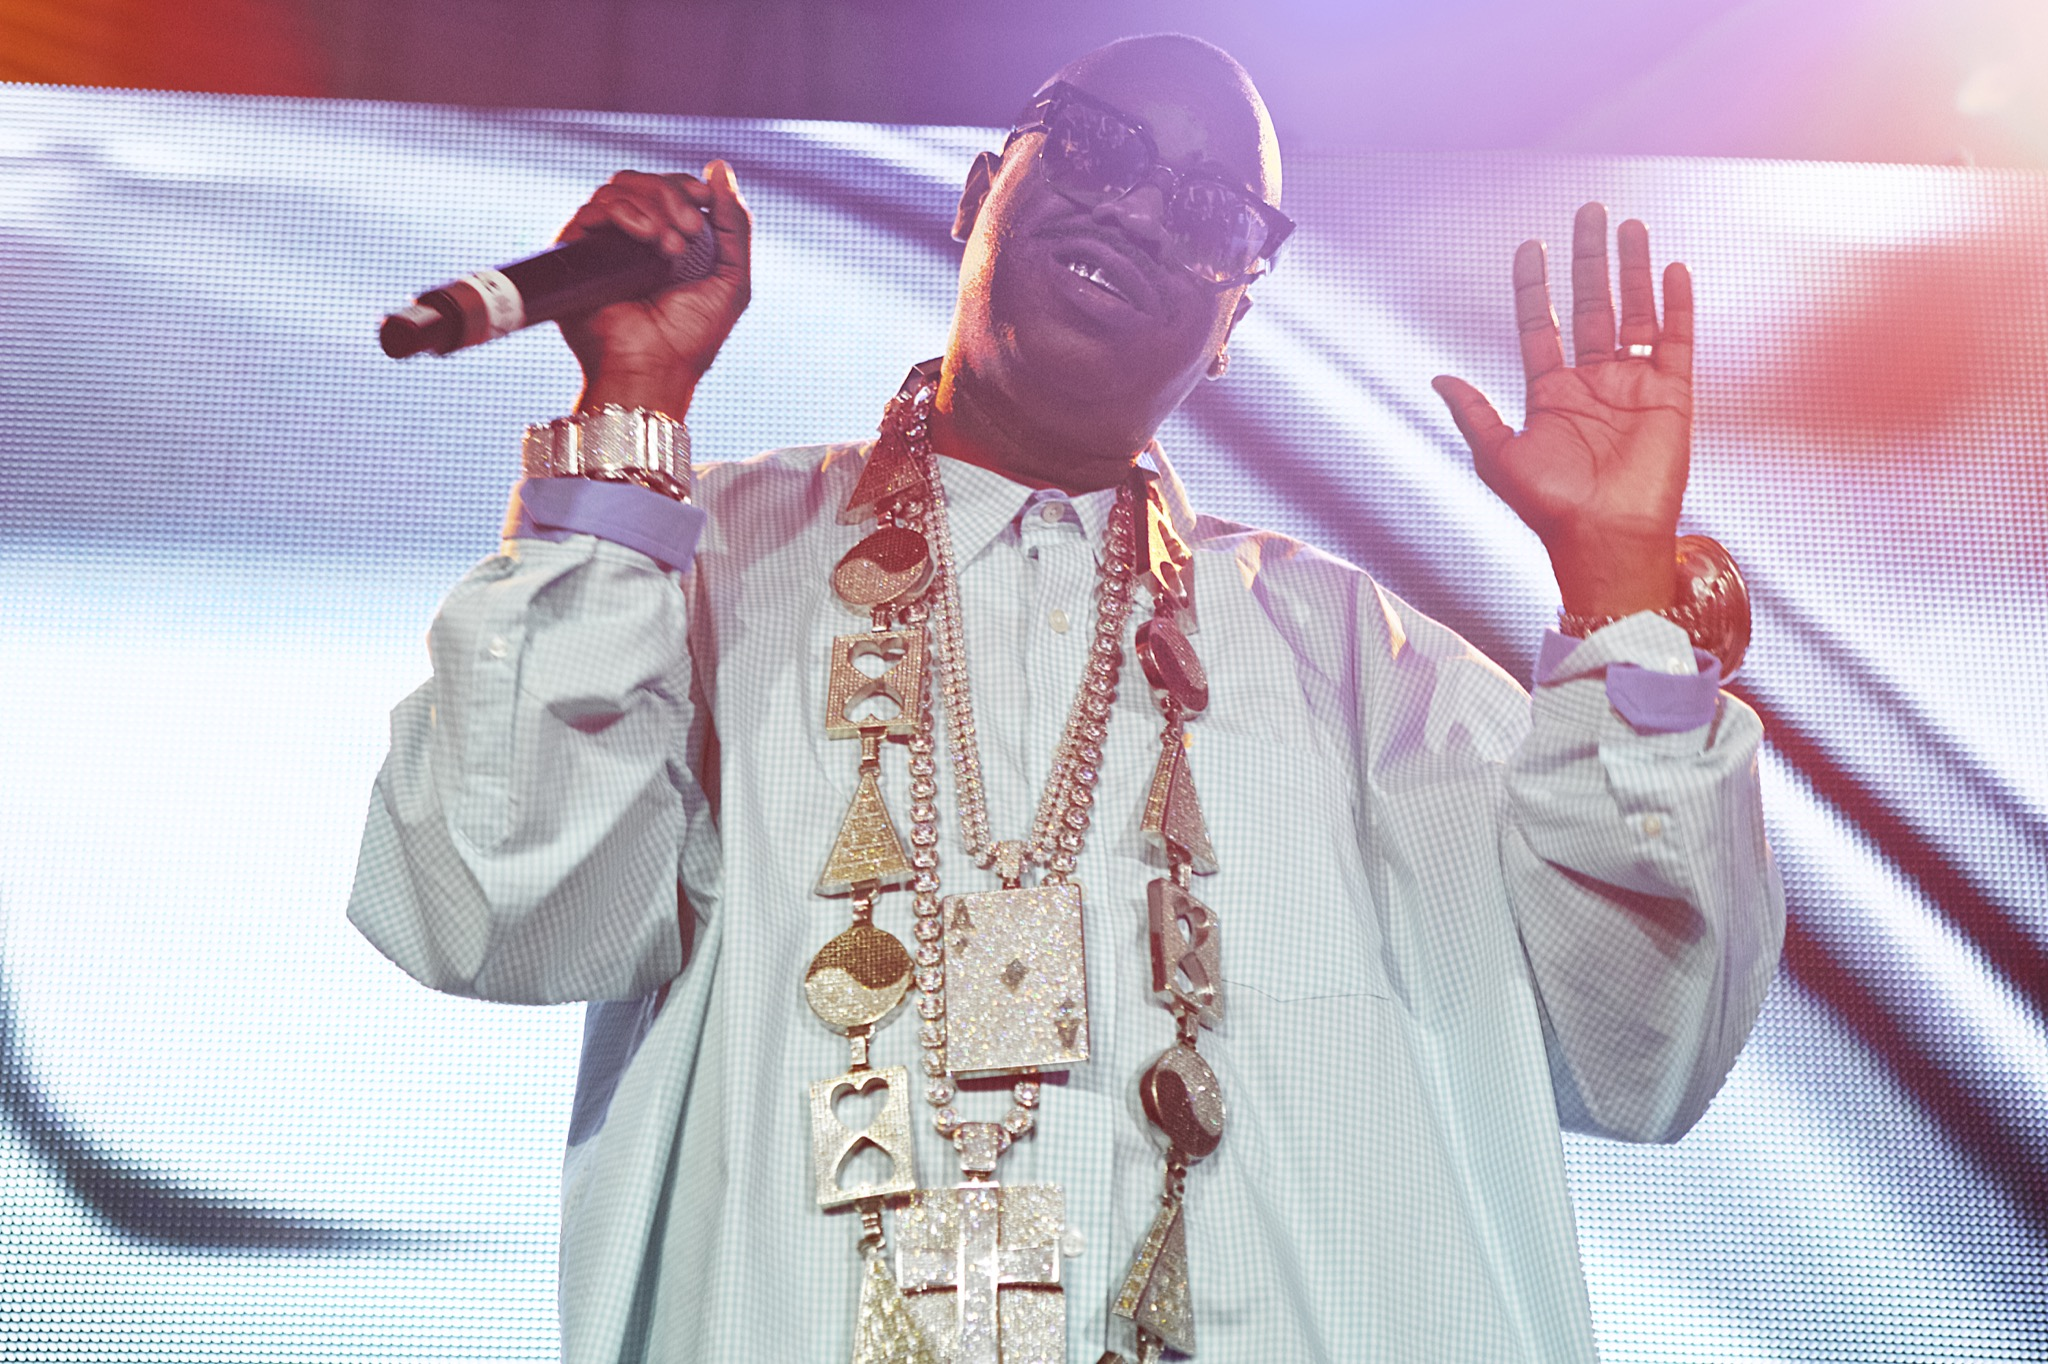 King Ice at Snoop Dogg C Day Party.57.jpg